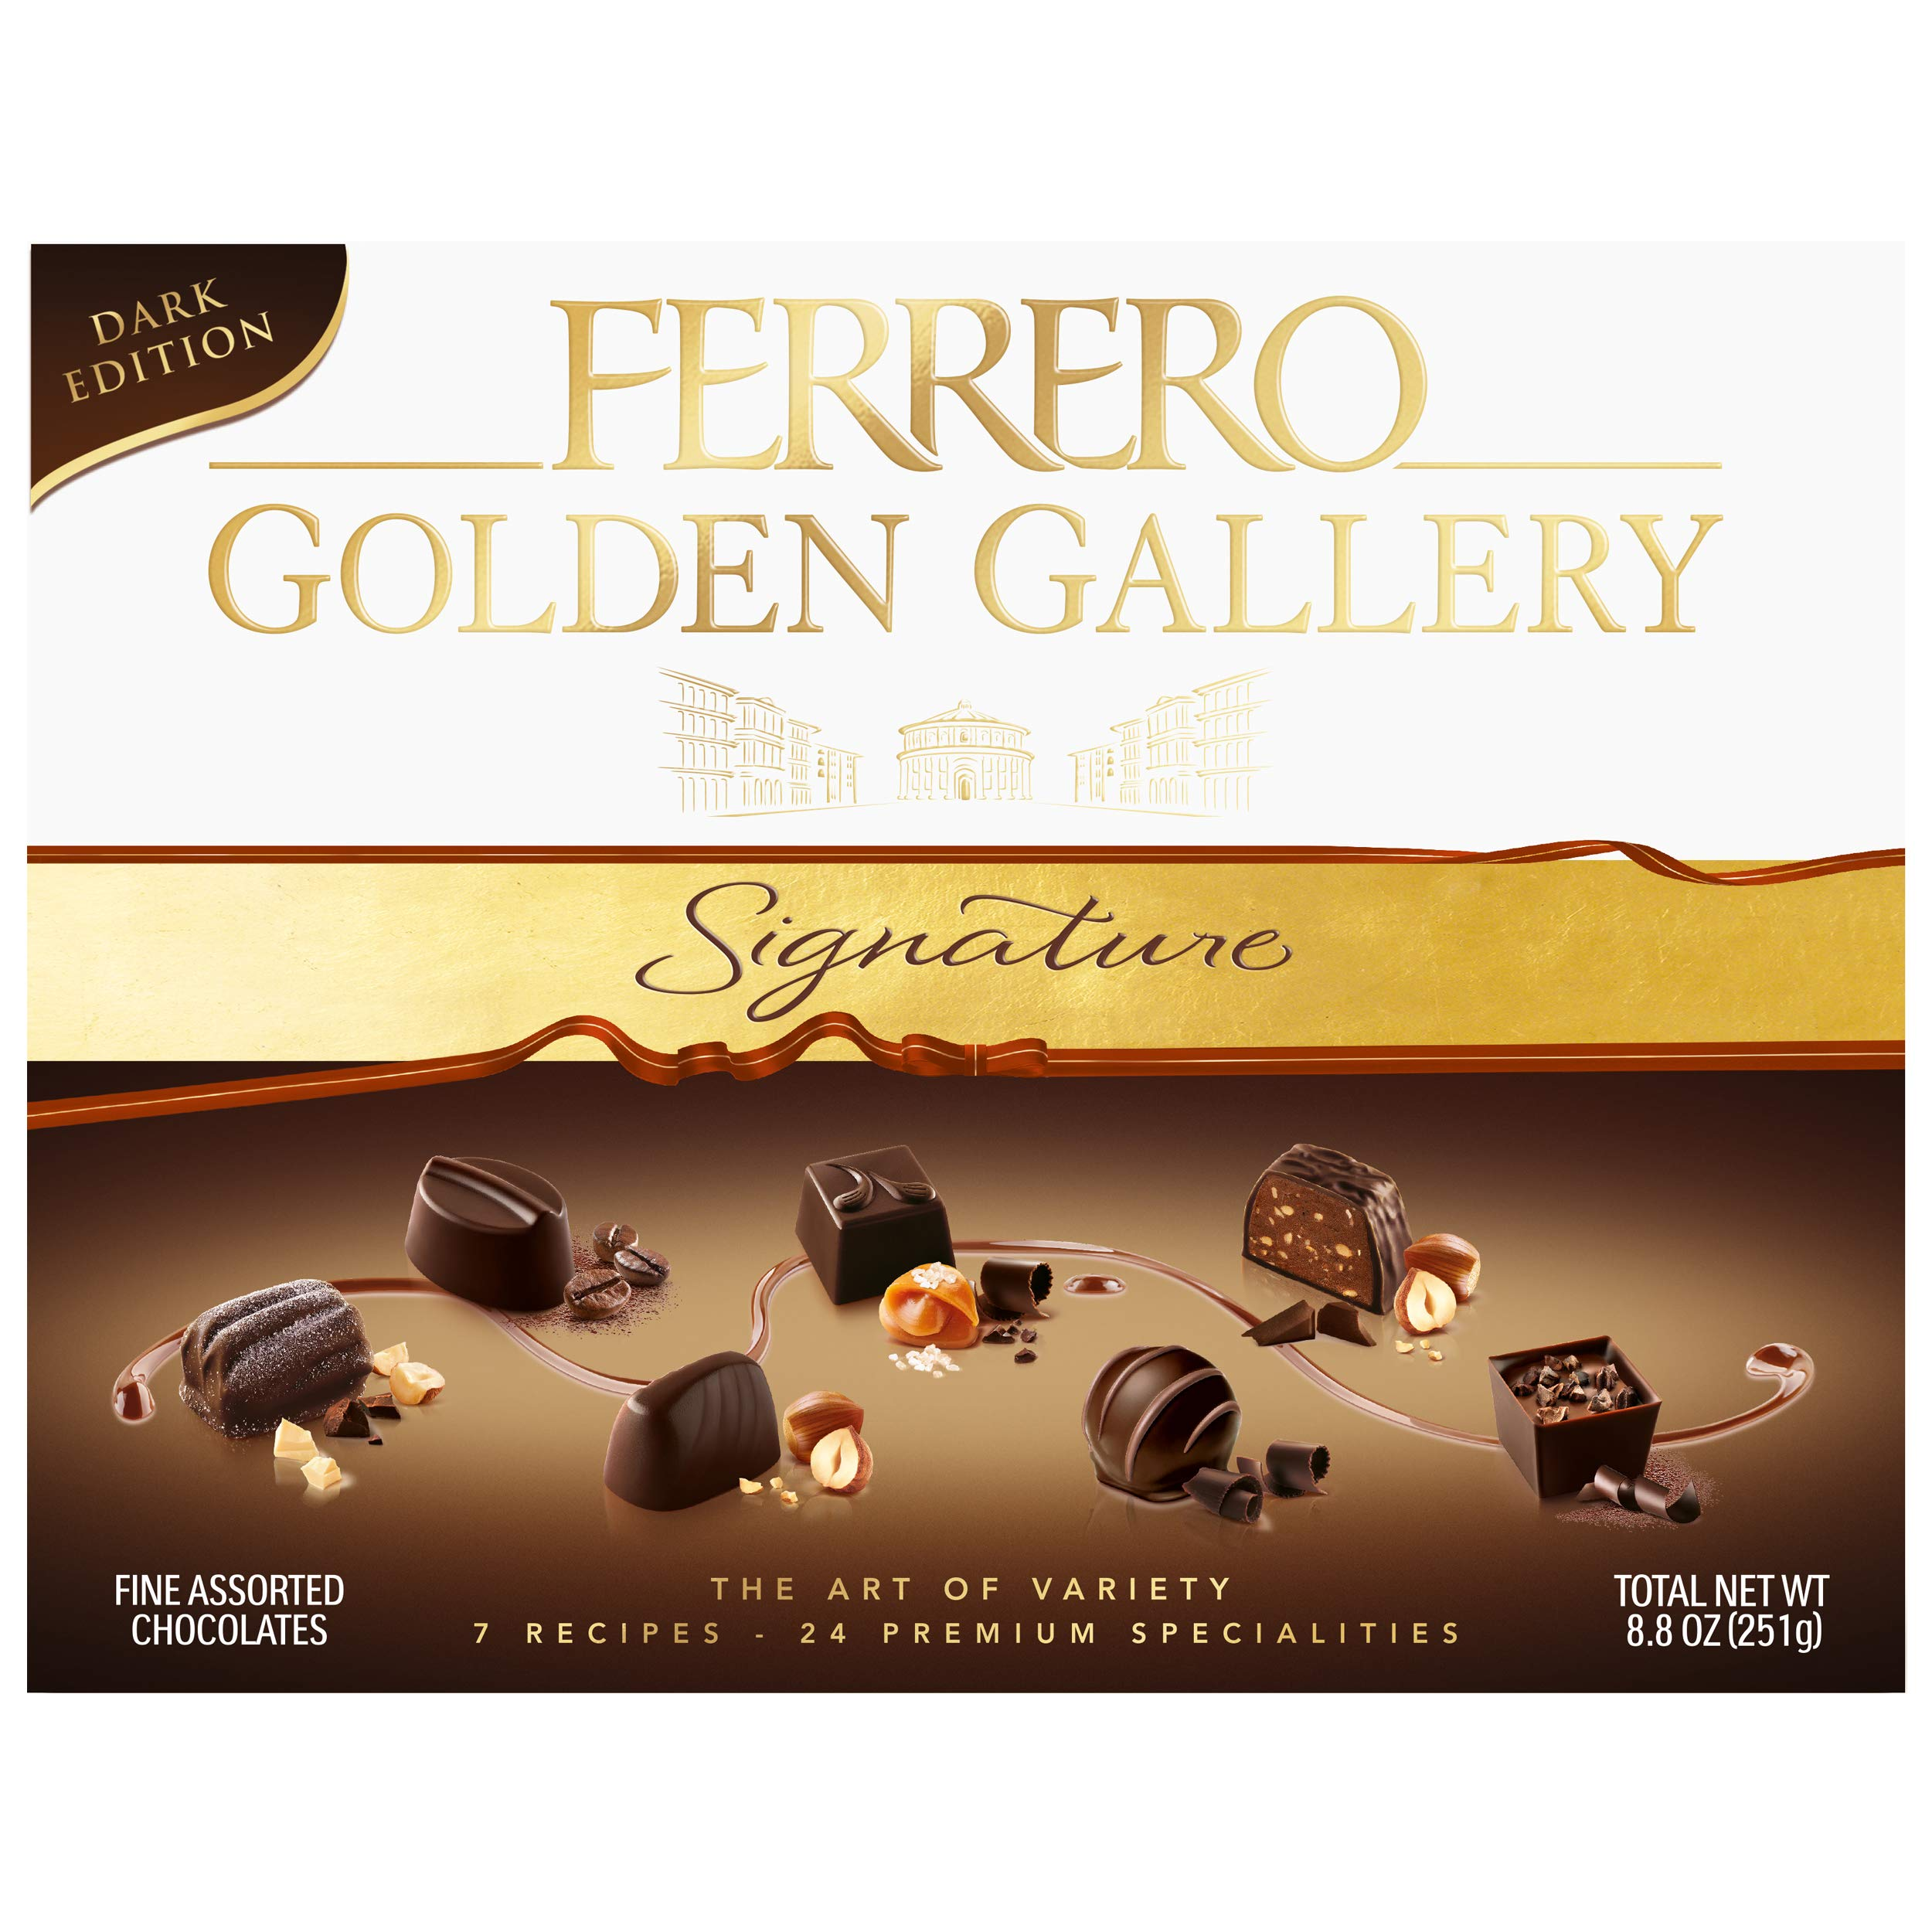 Ferrero Golden Gallery Dark, Signature Fine Assorted Chocolates, Candy Gift Box, 24 Count, 8.4 oz (240g)